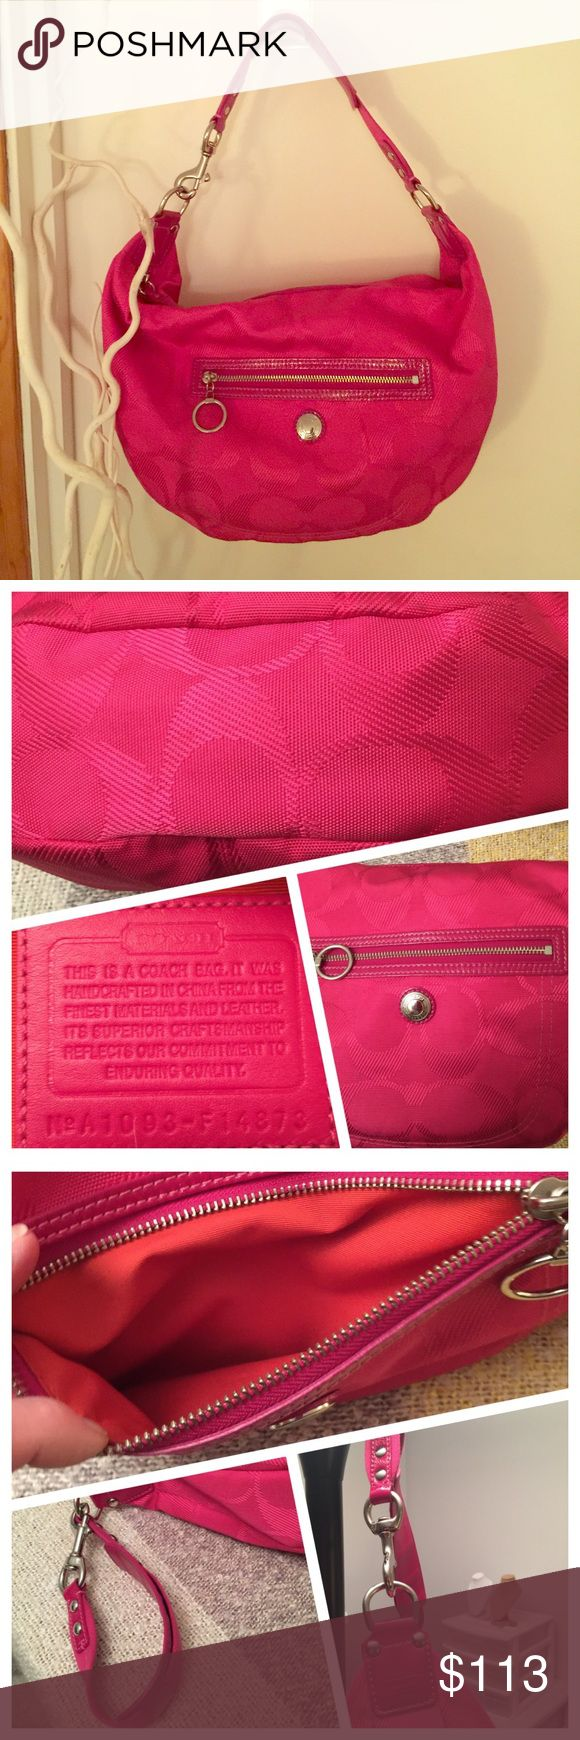 """❣️final MARKDOWN❣️Coach Hobo Bag 💕Outside Zip Pocket w/ Ring Pull.  Inside holds a Zip Pocket and 2 """"Pouch pockets"""" for Phone and Keys.  Lining is Solid Orange.  Silver Hardware.  8"""" Drop.  Measures 11""""H and the Width is approx 17"""" at the Top graduating to 11"""" at the Bottom.  Zip Closure.  Patent Leather Trim.  Excellent Condition. Coach Bags Hobos"""